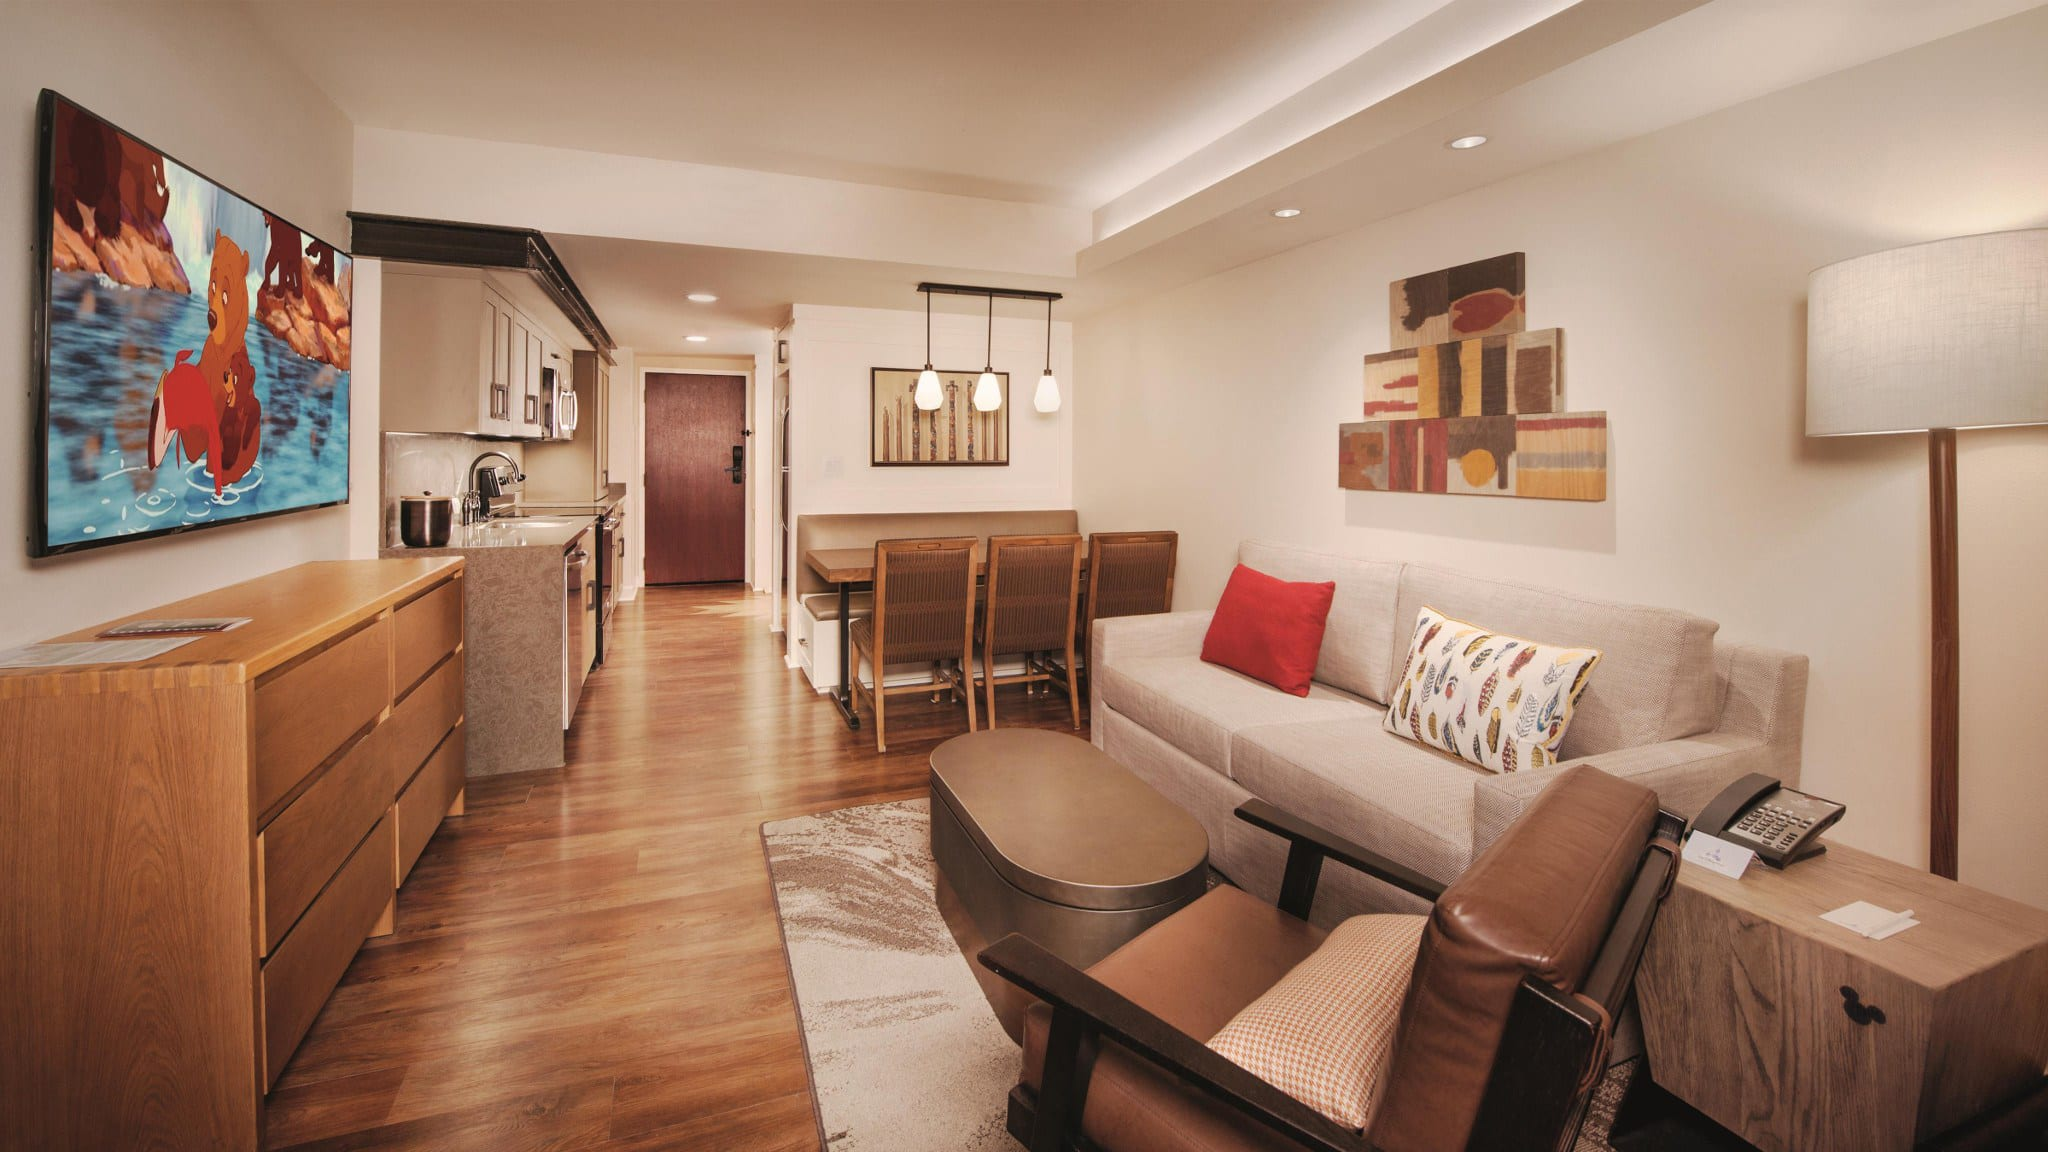 Living area with sleeper sofa, armchair, coffee table with storage, dining table and chairs, hanging accent lights, artwork, dresser, flat panel TV and kitchenette.